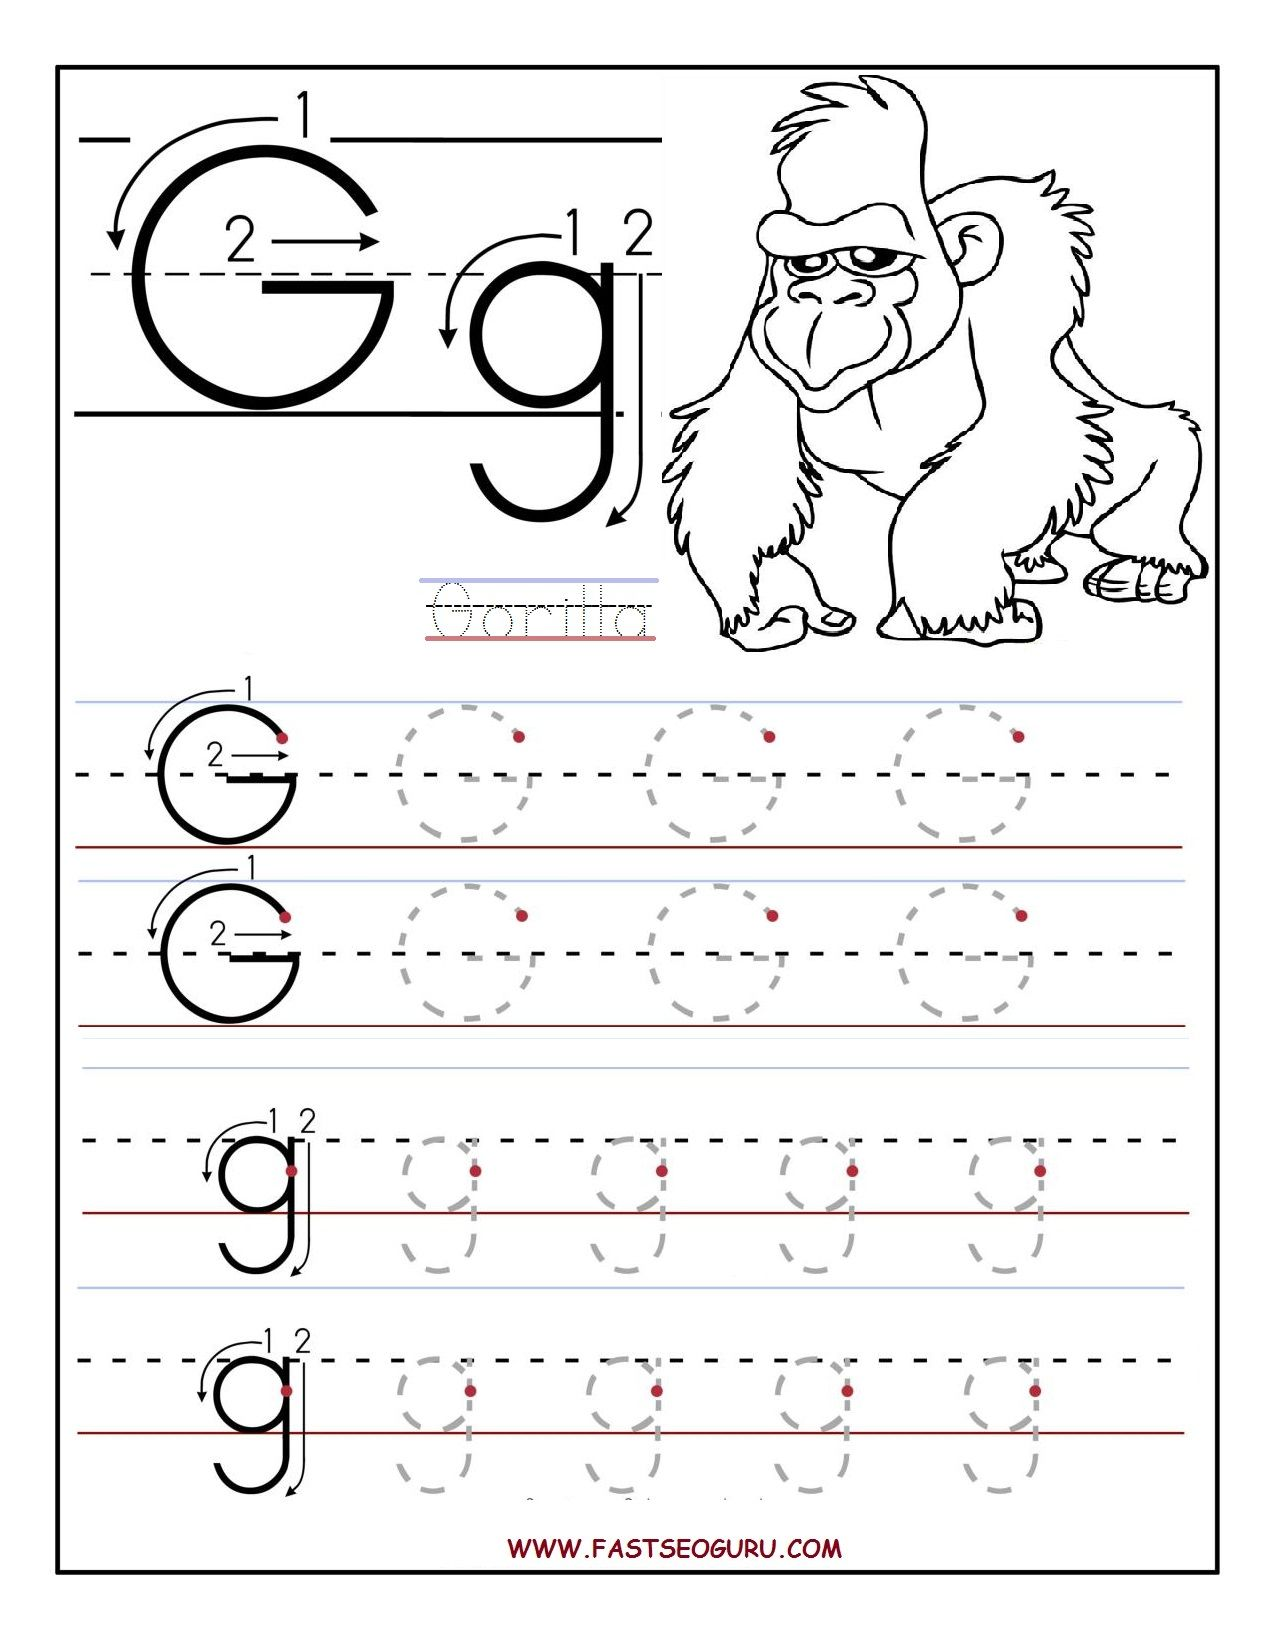 worksheets for preschoolers | Printable letter G tracing worksheets ...